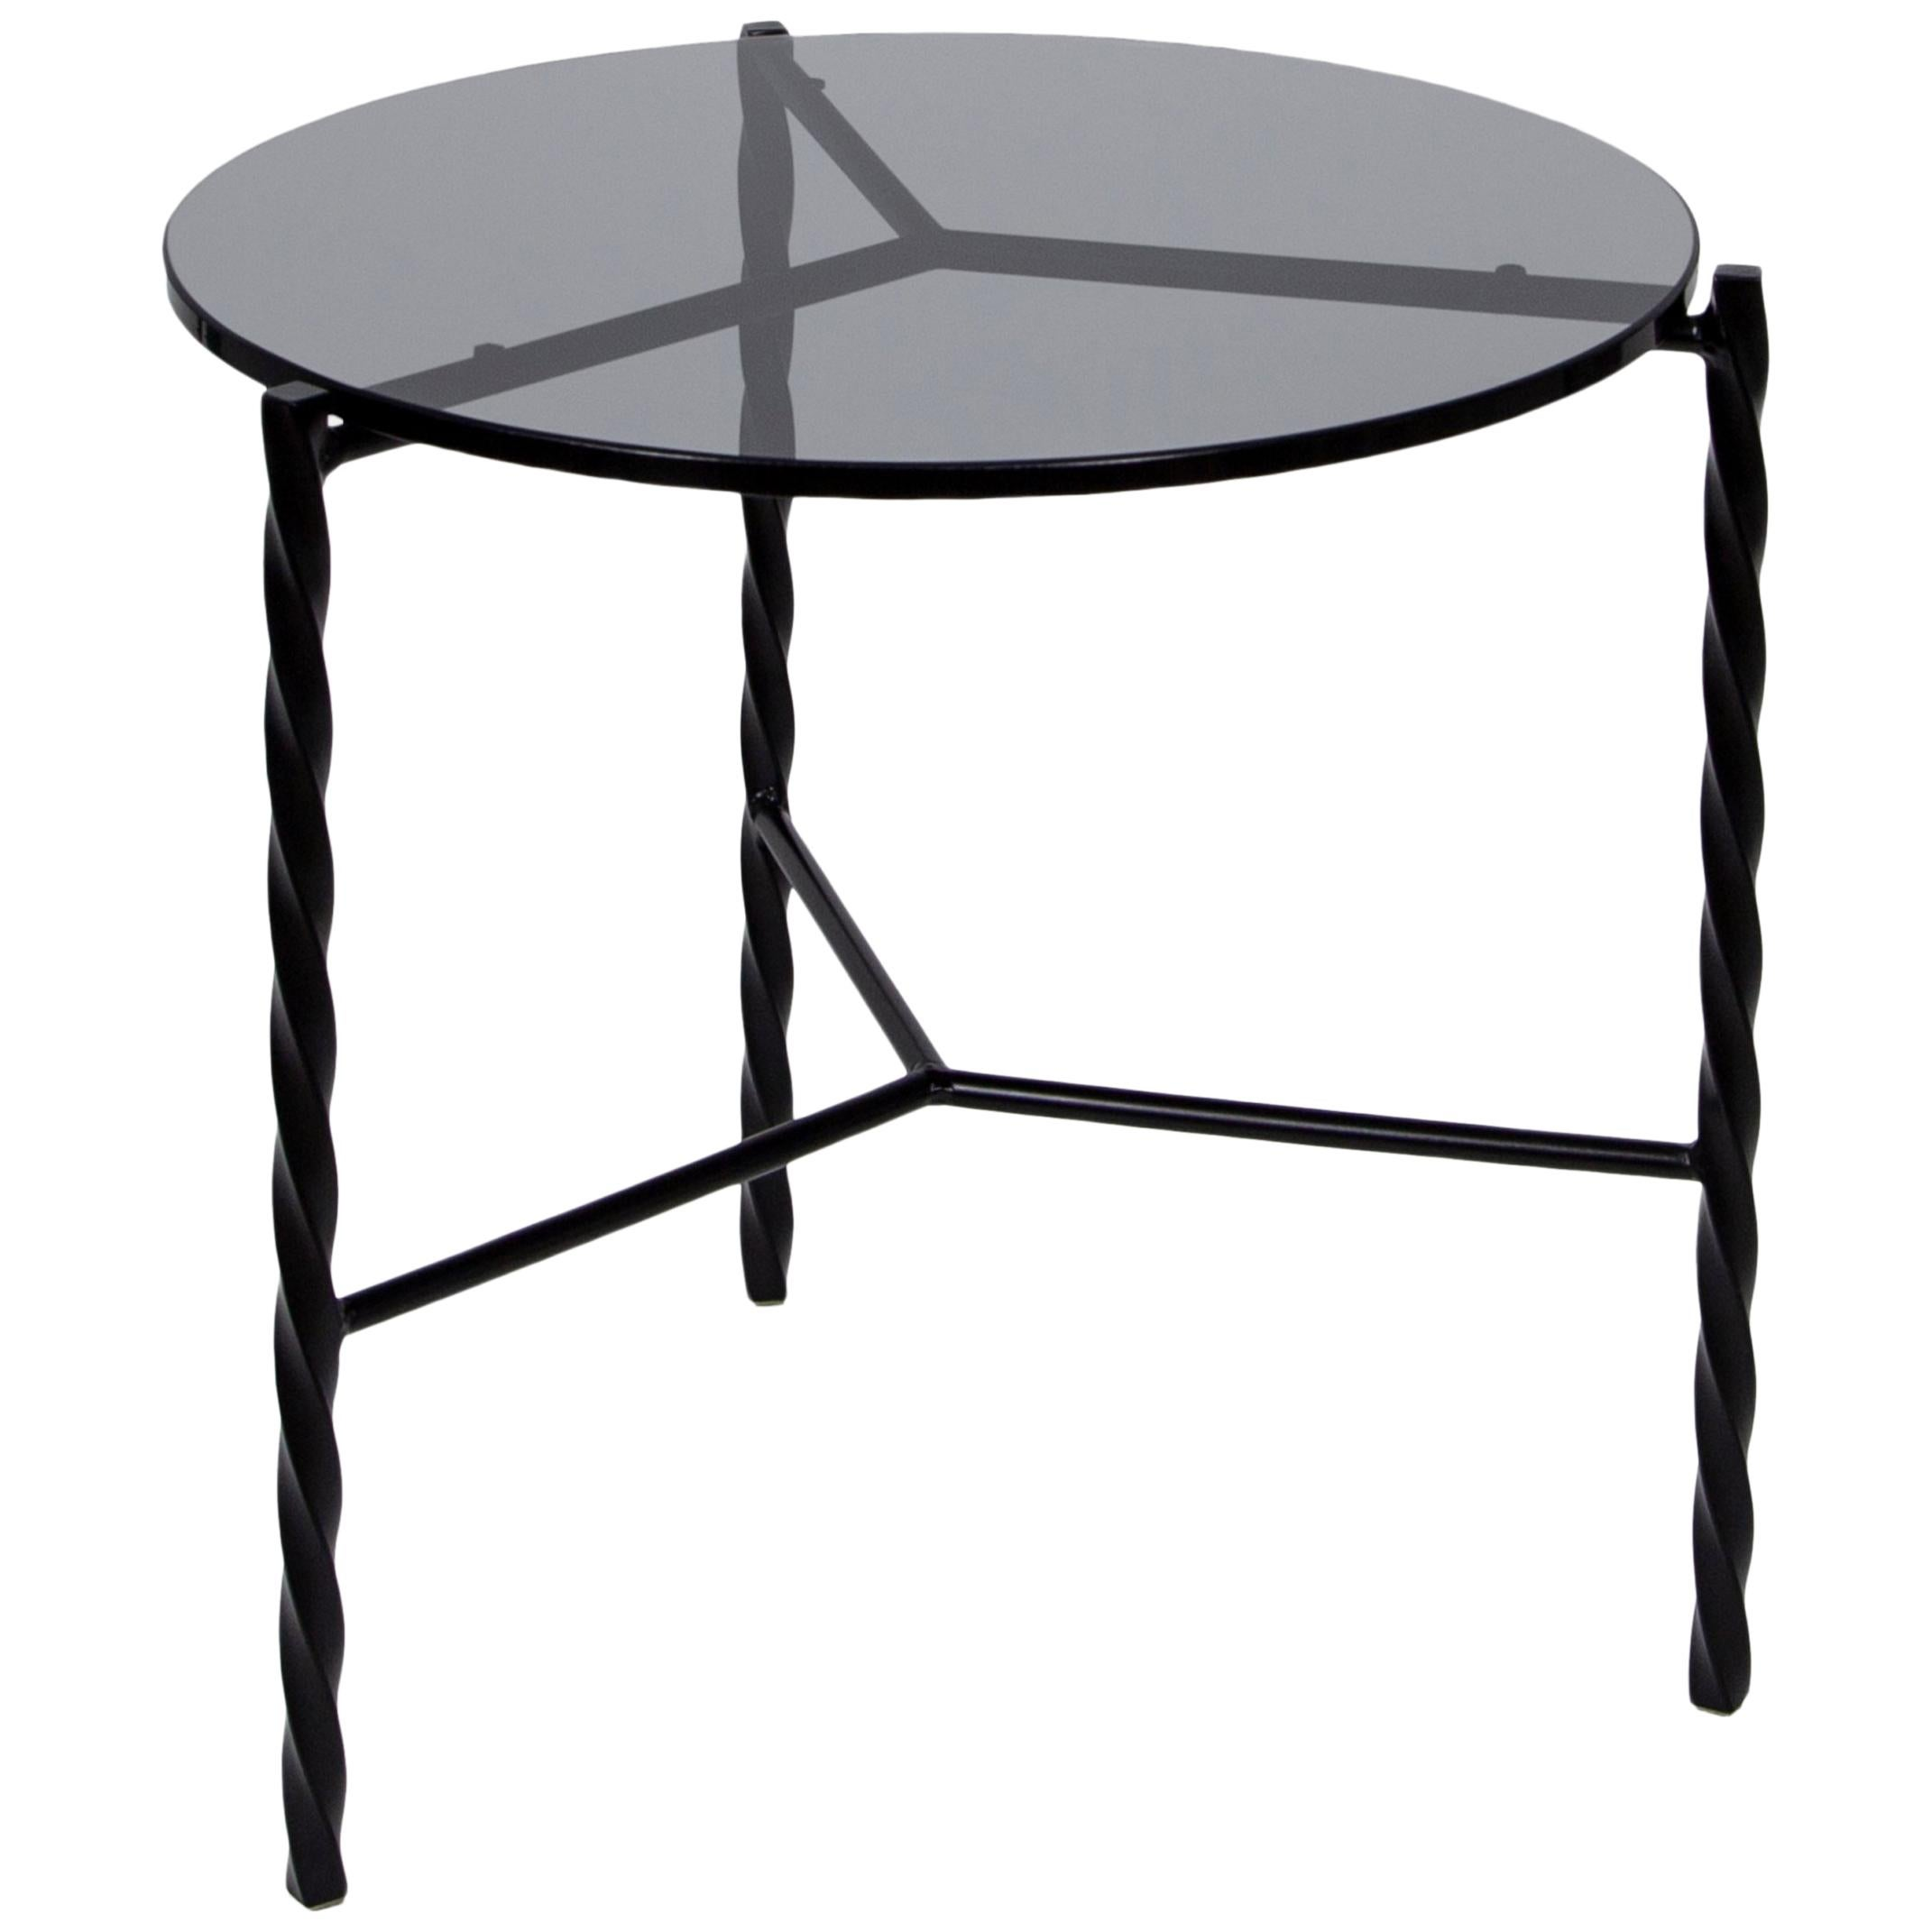 Customizable Von Iron Side Table from Souda, Black Glass, Made to Order